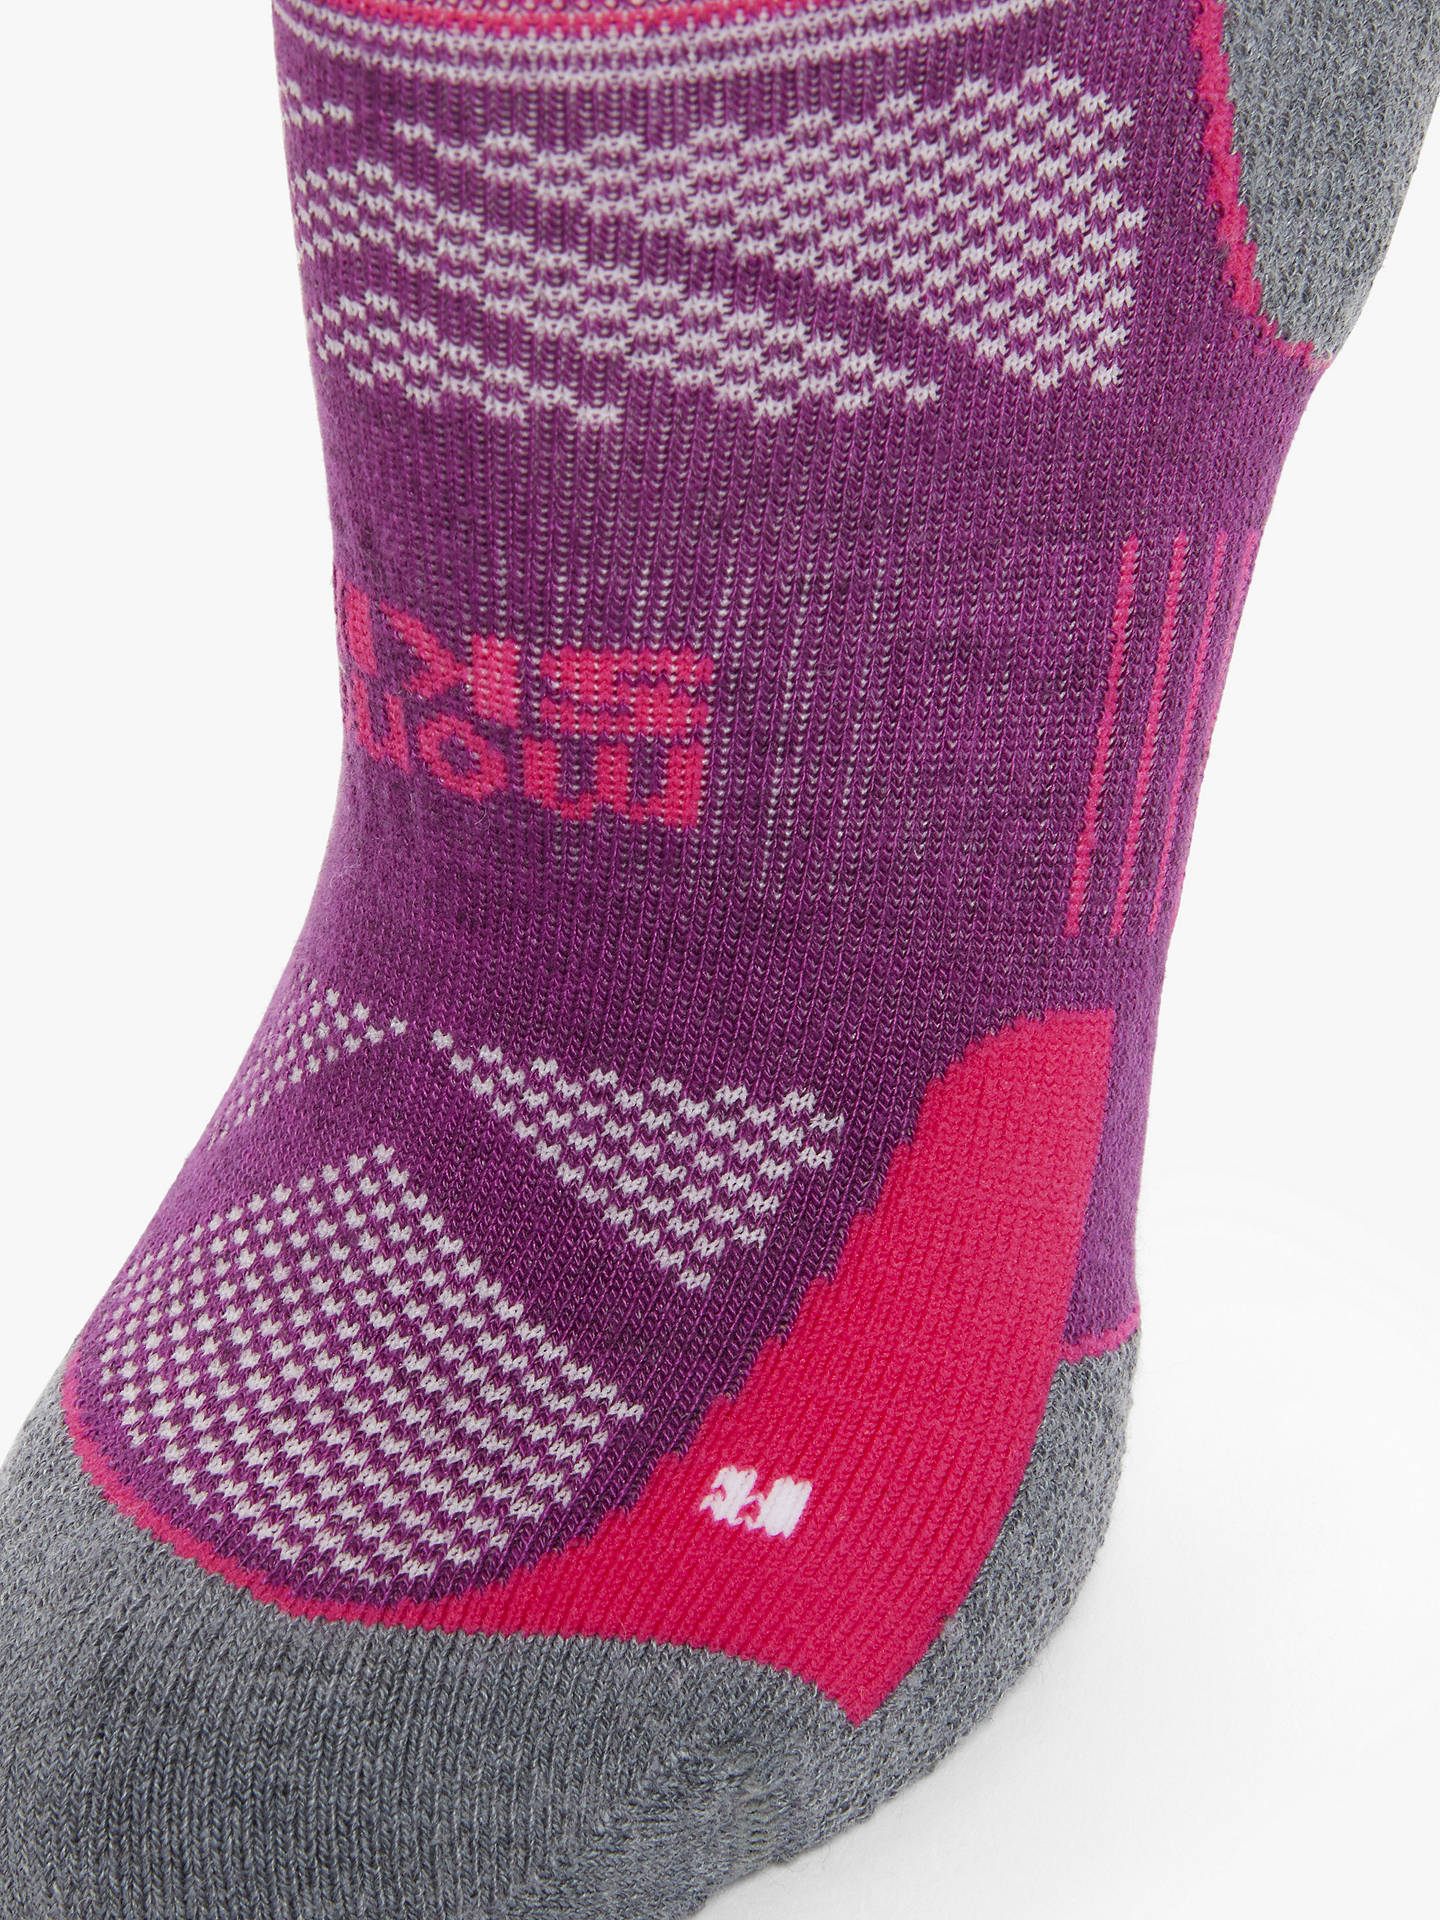 f4ebf95b3 Buy Hilly Supreme Running Socks